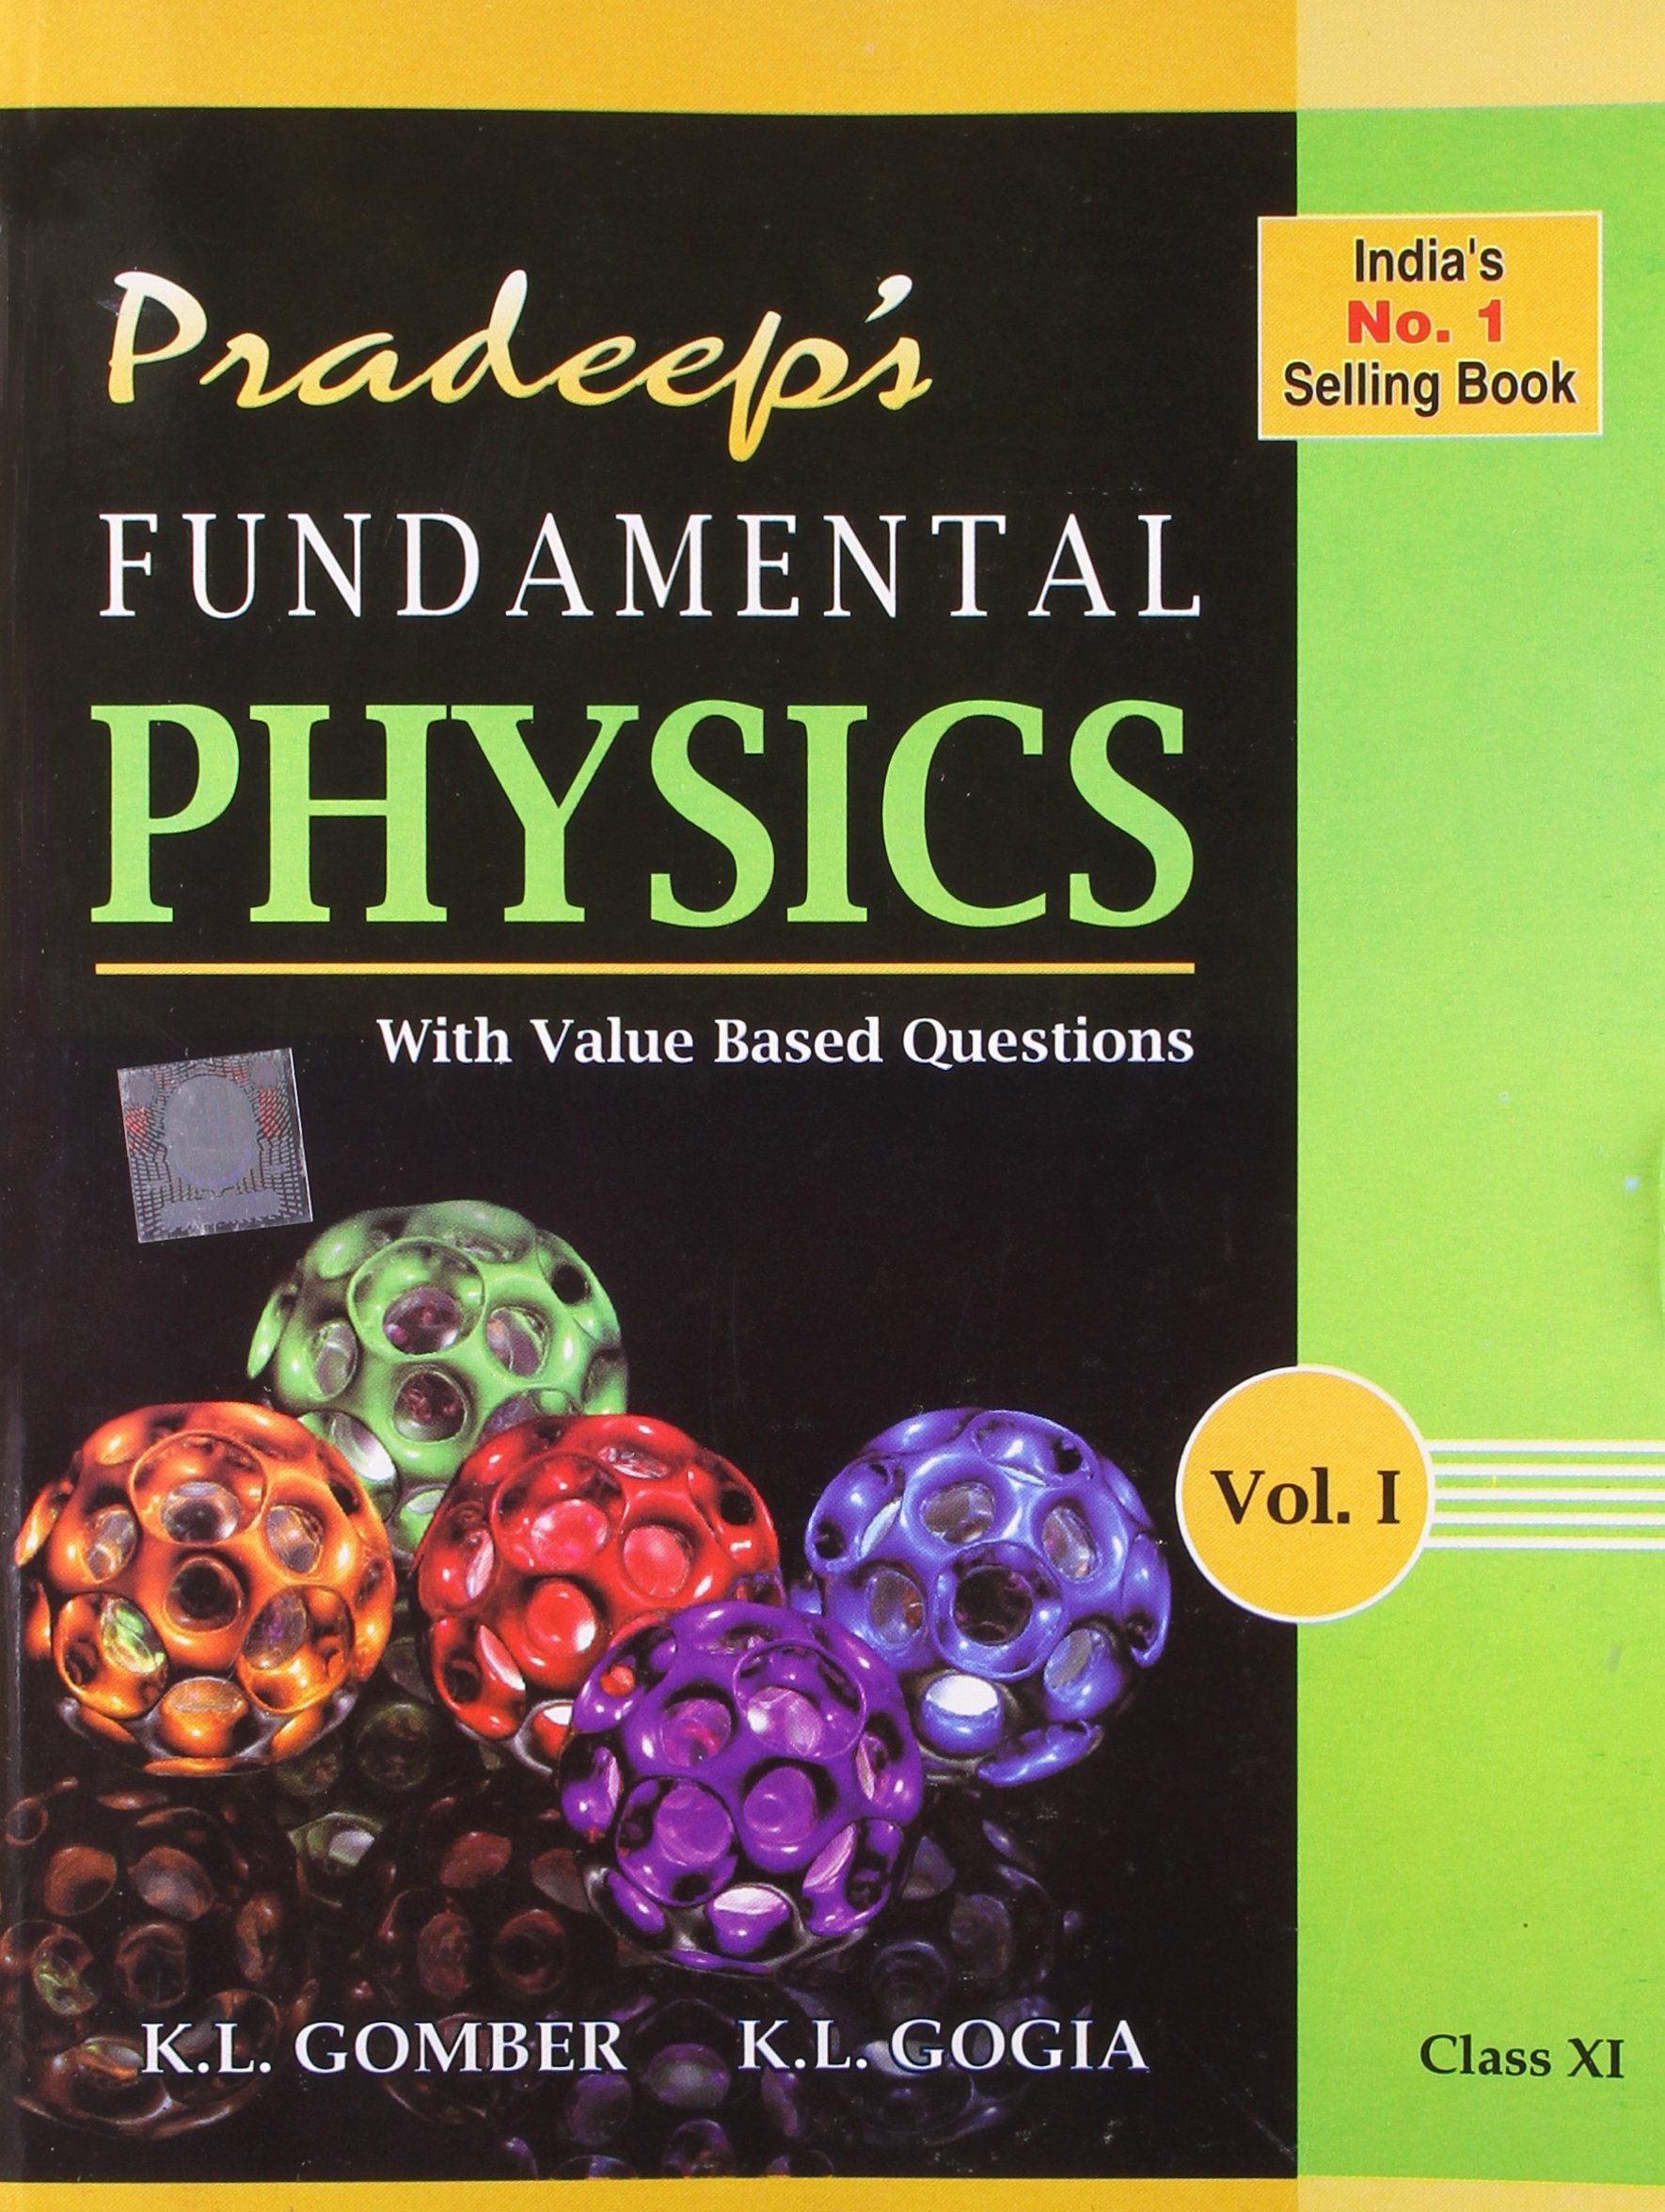 Buy pradeep s a text book of physics with value based questions class xi set of 2 volumes book online at low prices in india pradeep s a text book of